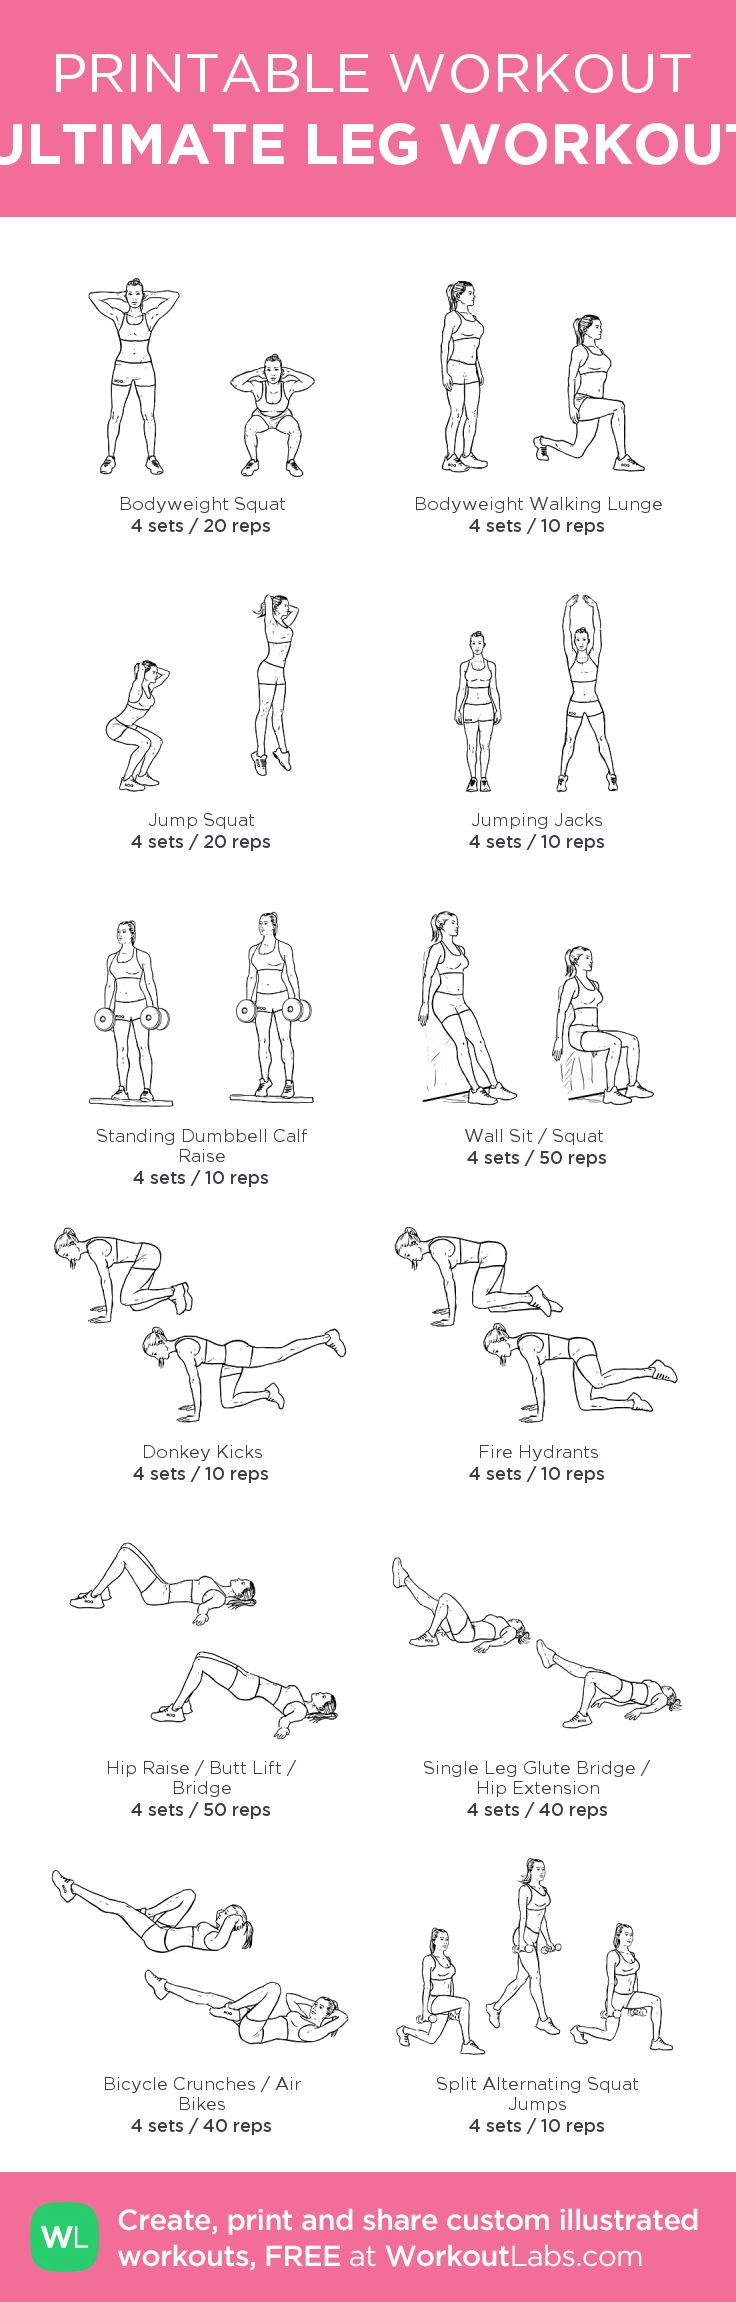 ULTIMATE LEG WORKOUT: my custom printable workout by @WorkoutLabs #workoutlabs #customworkout